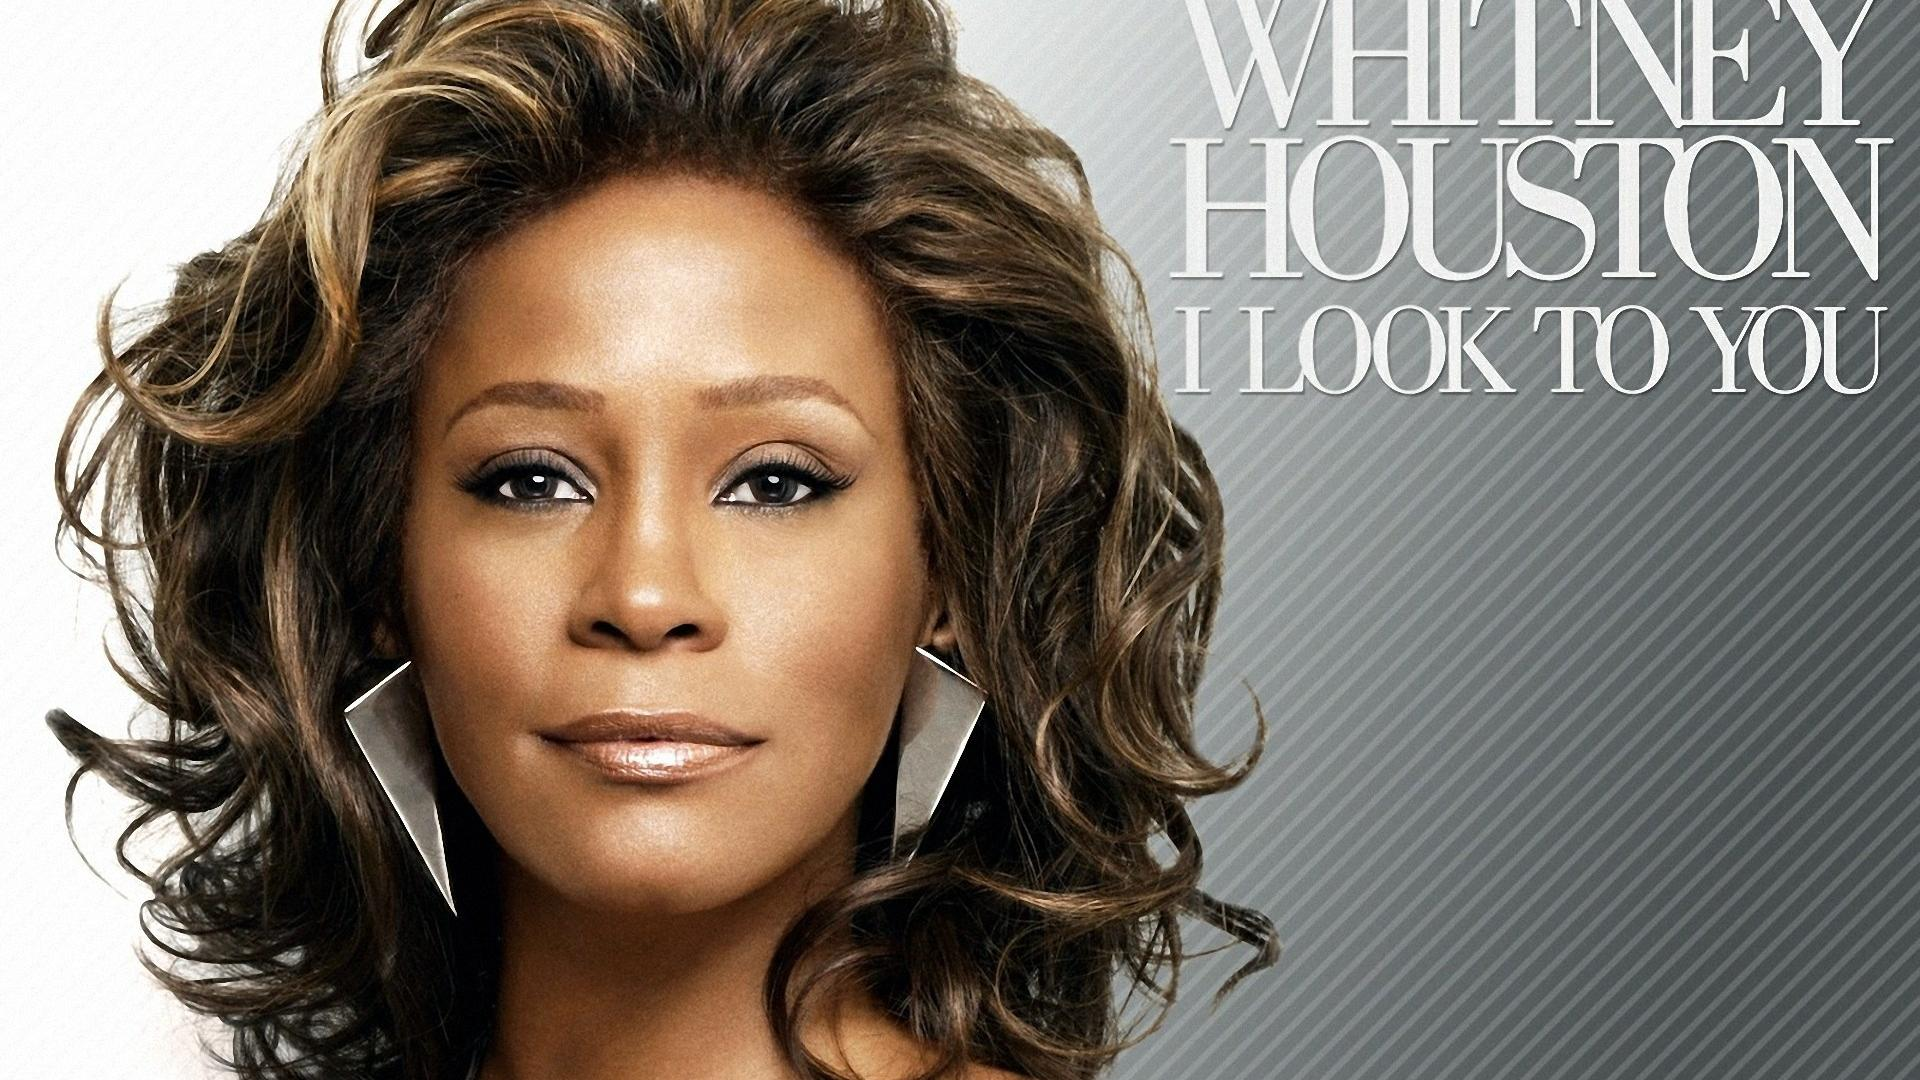 Whitney Houston I Look To You Album wallpaper